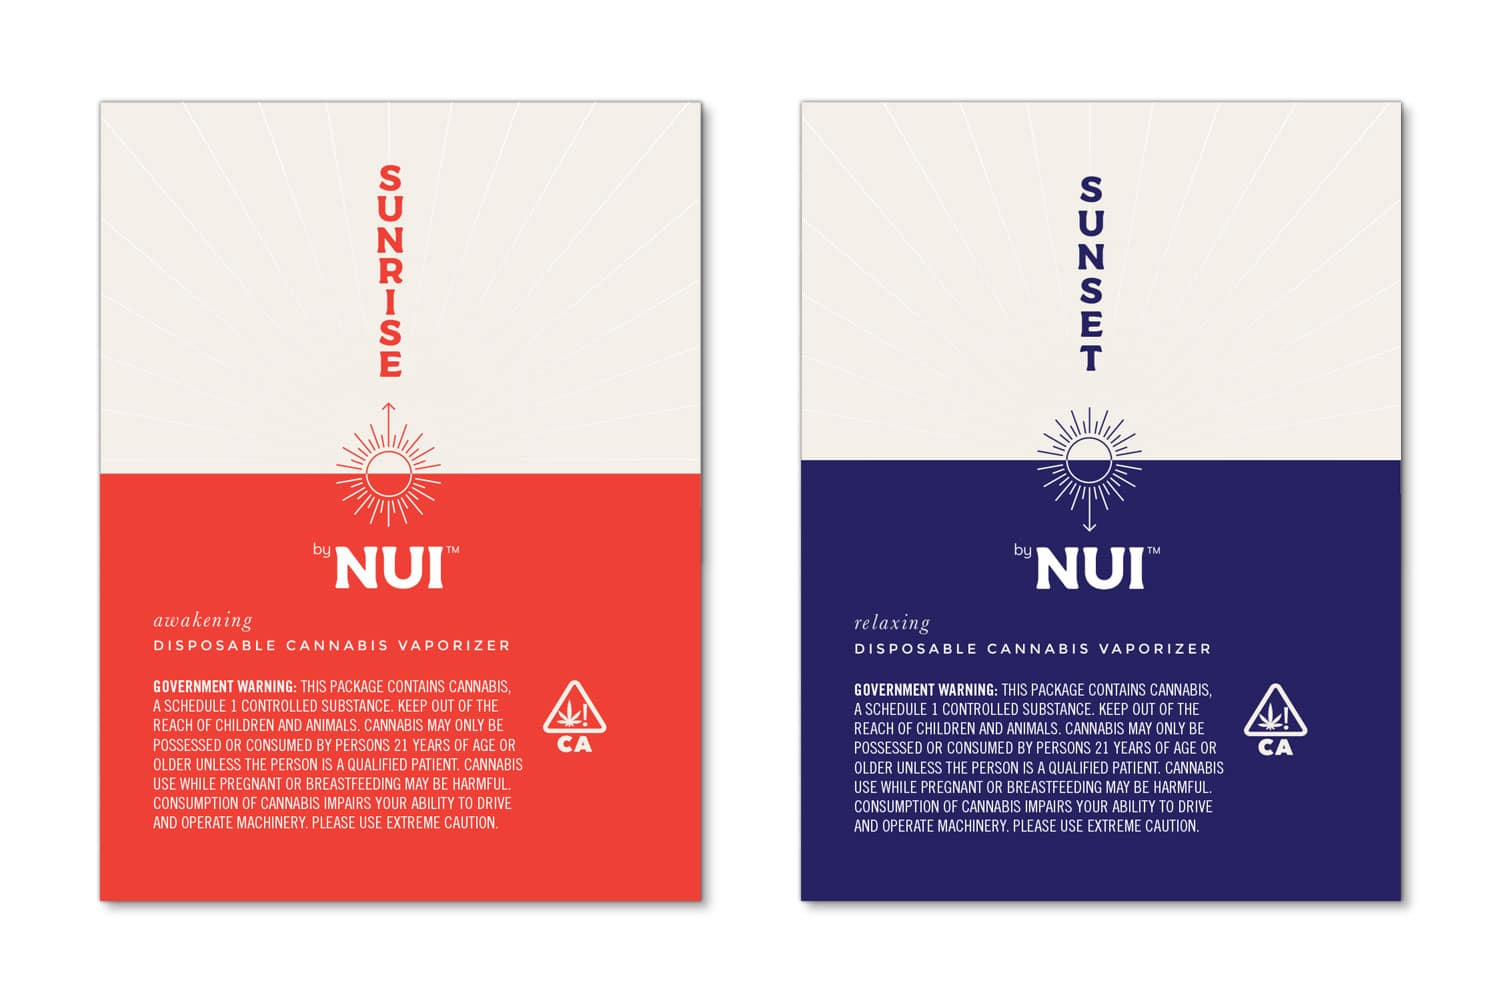 NUI packaging design, full label 3